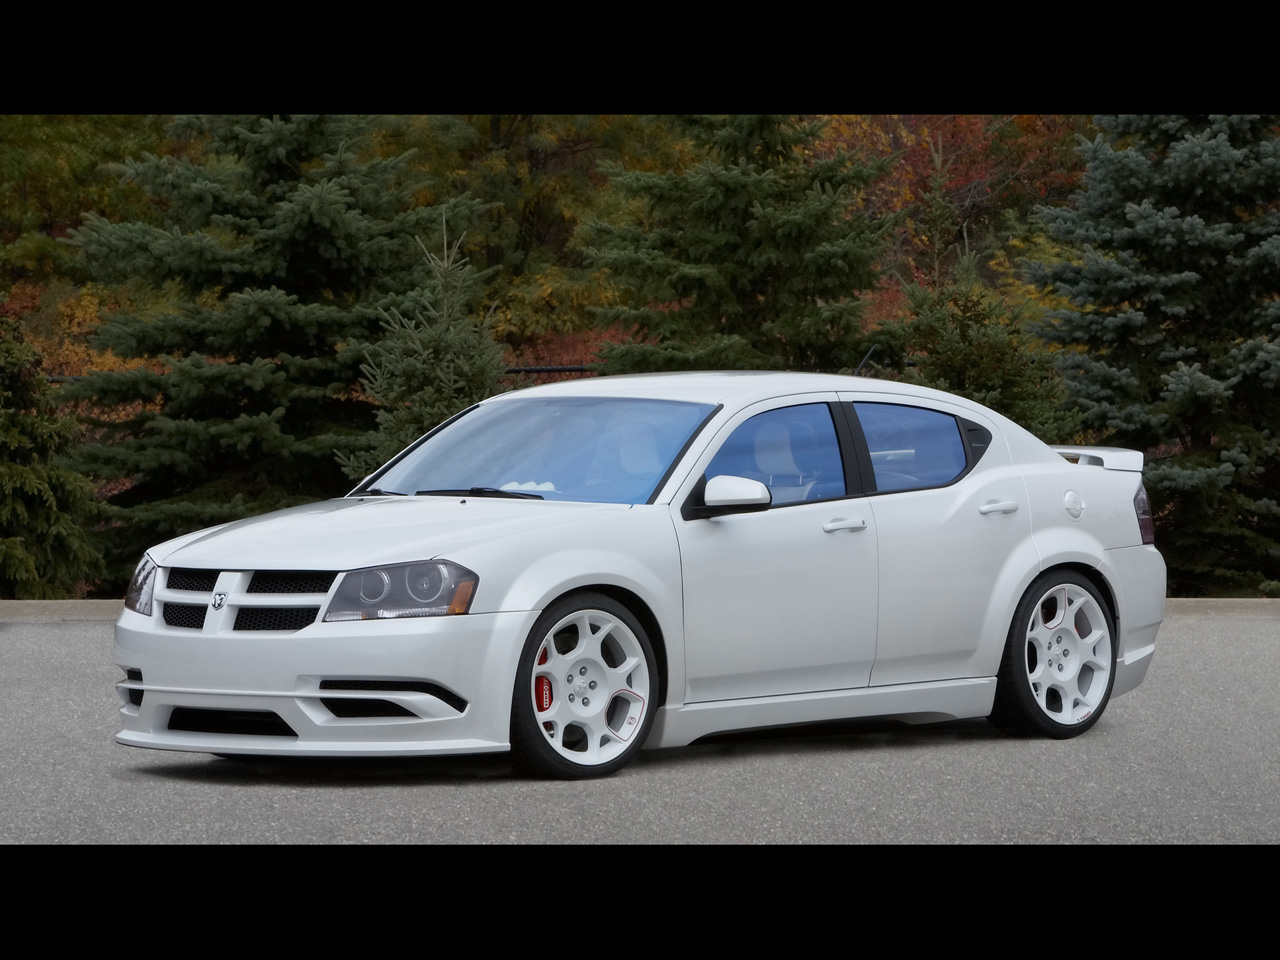 Dodge Avenger Car Specifications High Resolution Image Wallpapers HD